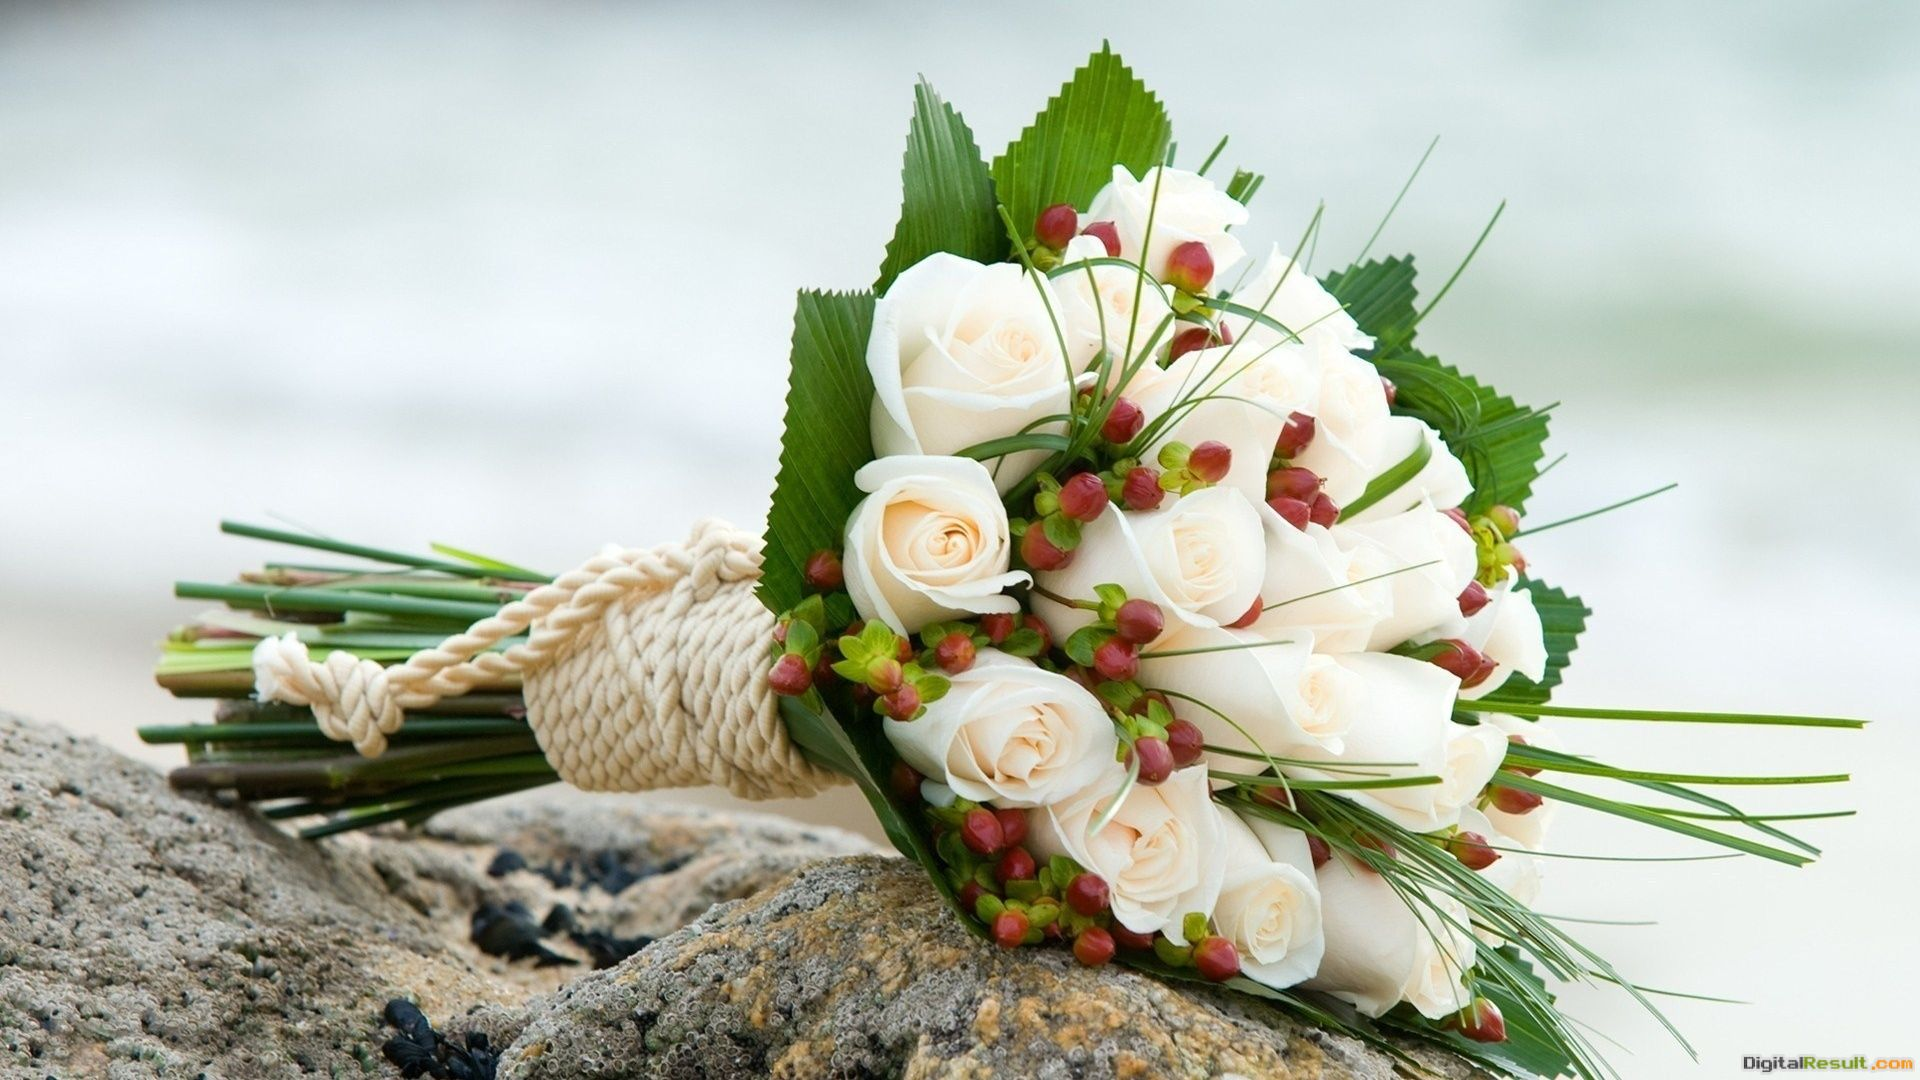 White roses in a wedding bouquet wallpapers and imageswallpapers 1219